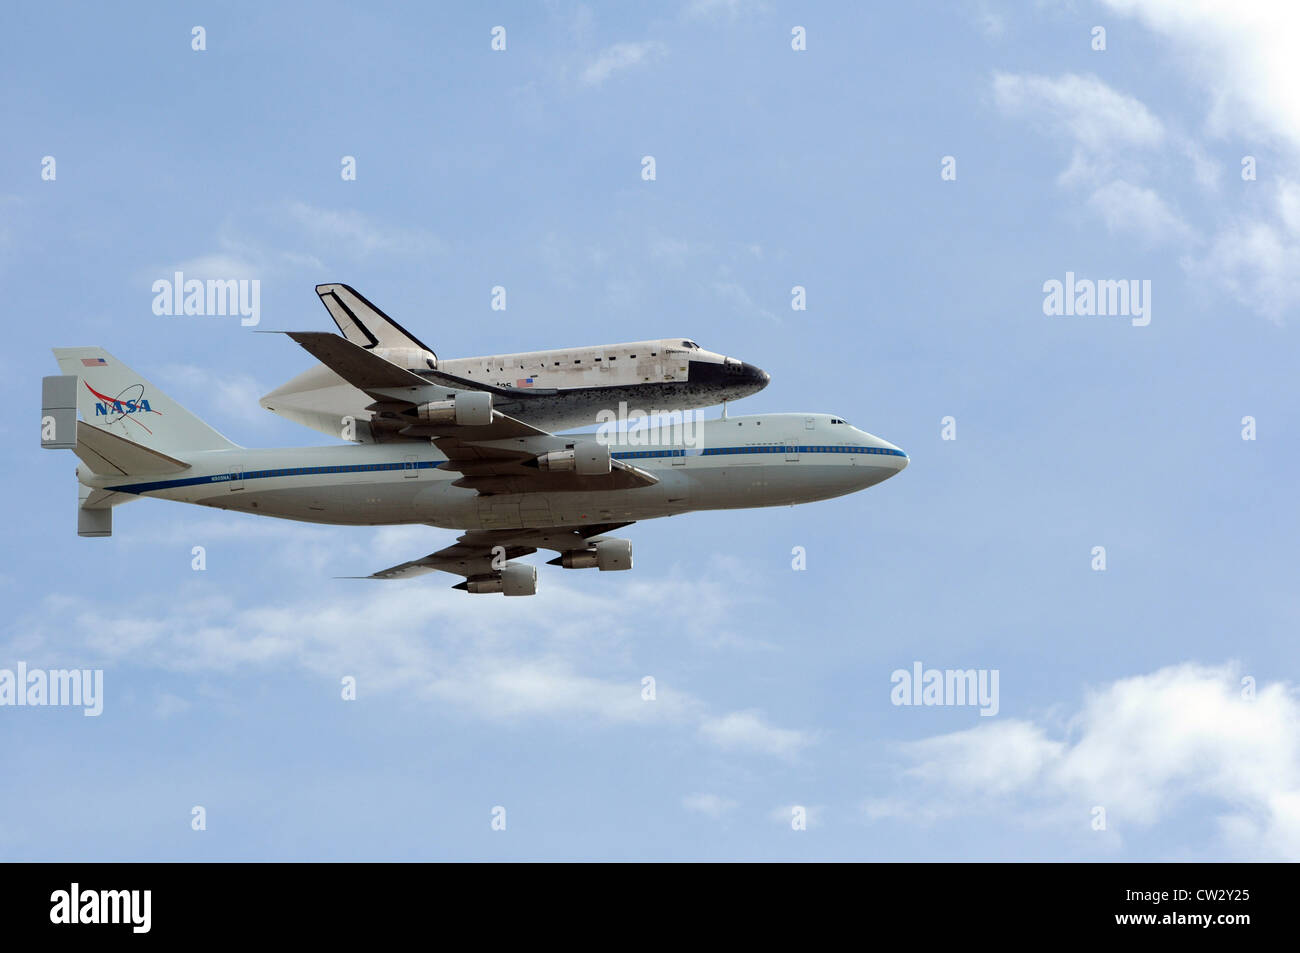 Space shuttle Discovery attached to its 747 transport passes over the nation's capital WASHINGTON, D.C. (April 17, Stock Photo